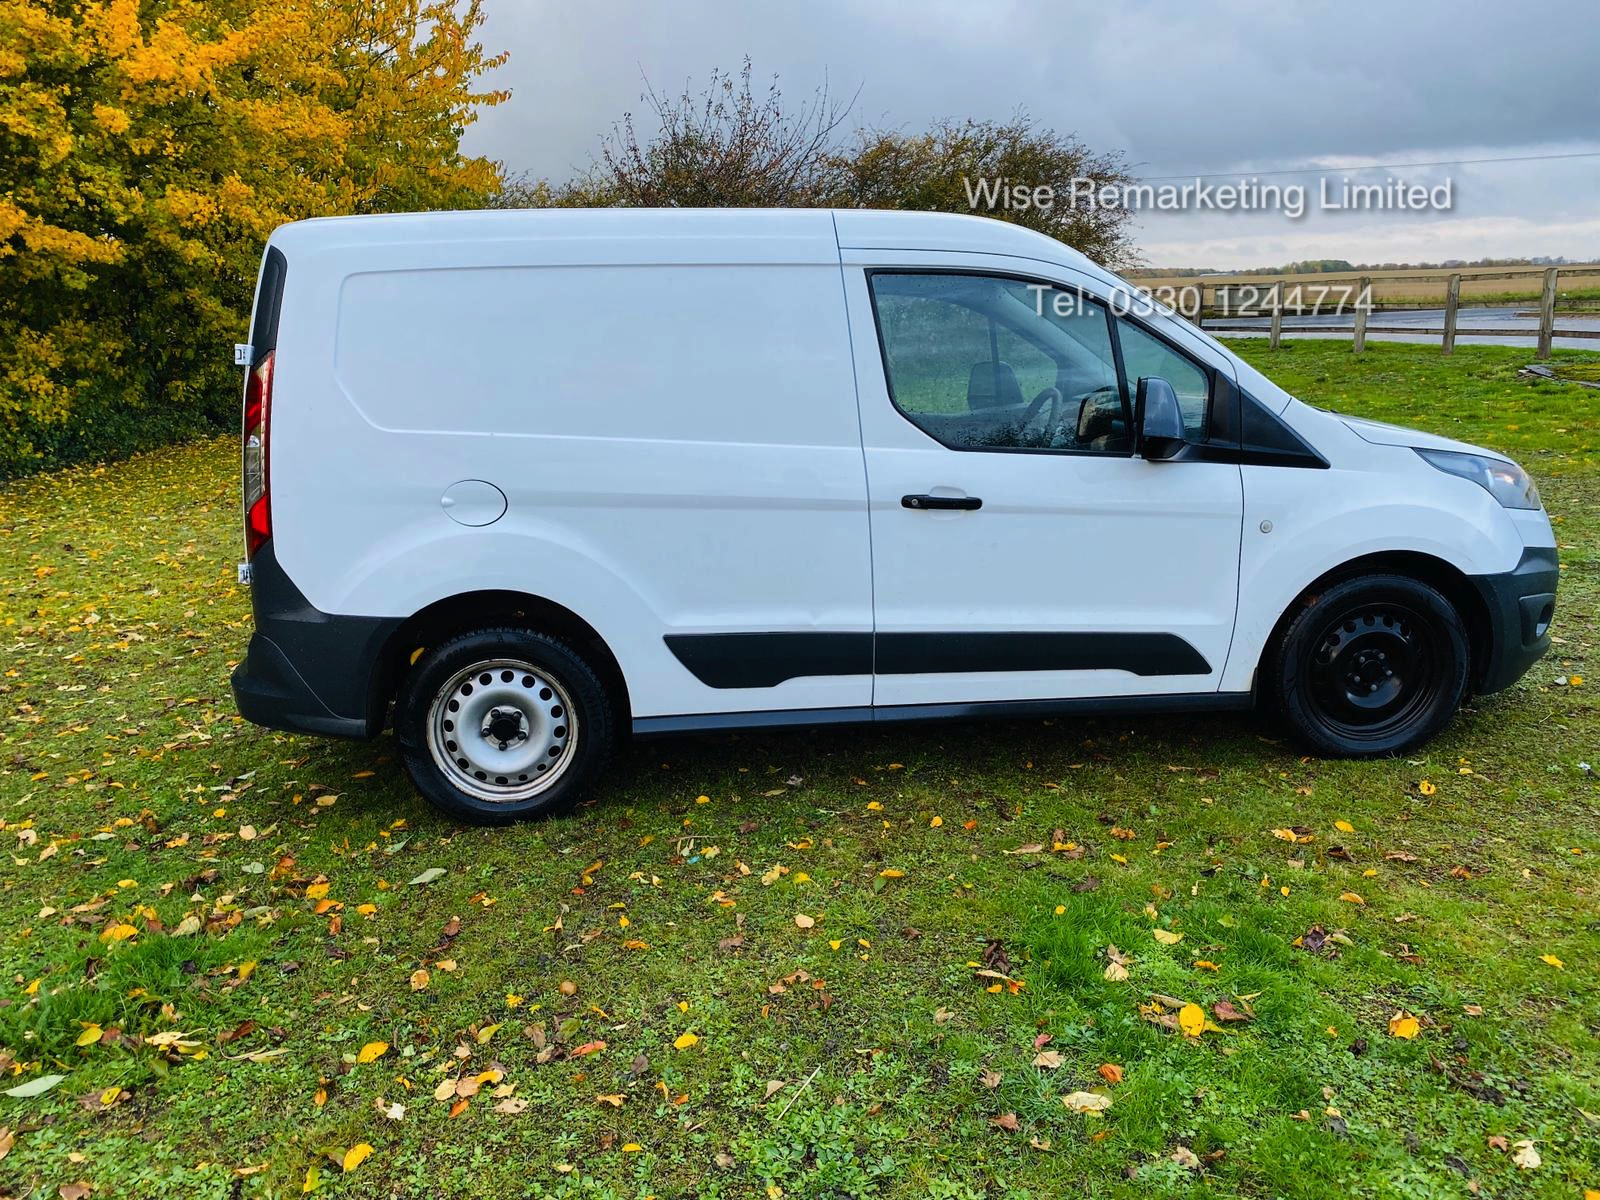 Ford Transit Connect 200 1.6 TDCI - 2016 16 Reg - 1 Keeper From New - Elec Pack -Bluetooth - Image 4 of 18